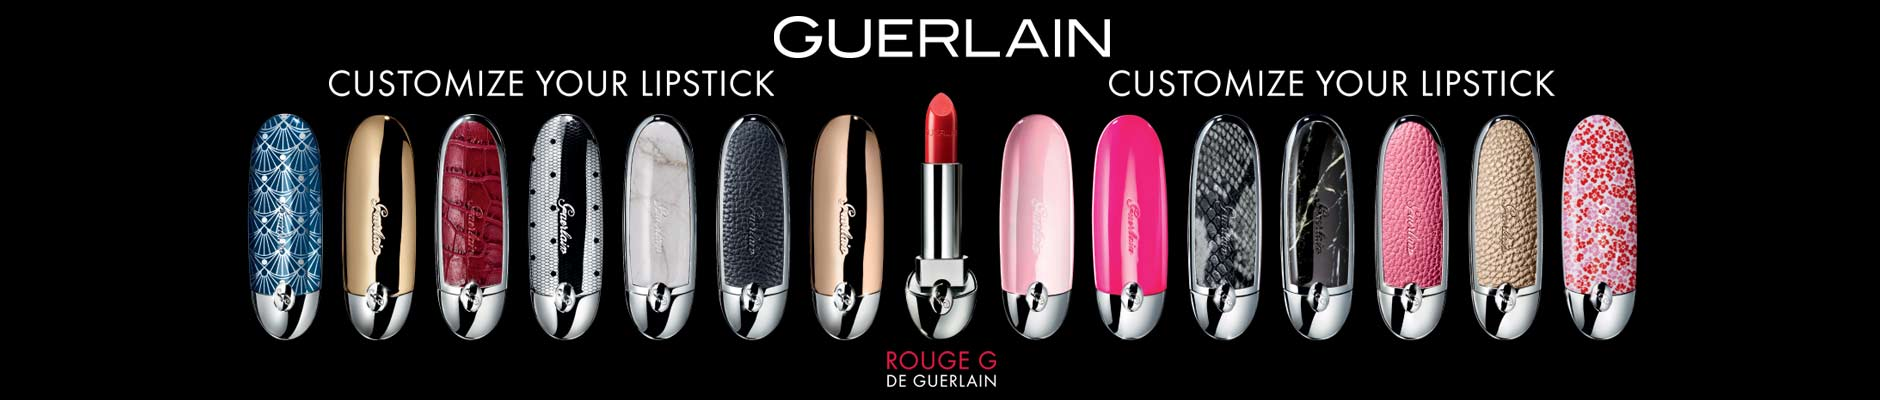 Guerlain: Choose your lipstick, customize your lipstick - Rouge G de Guerlain